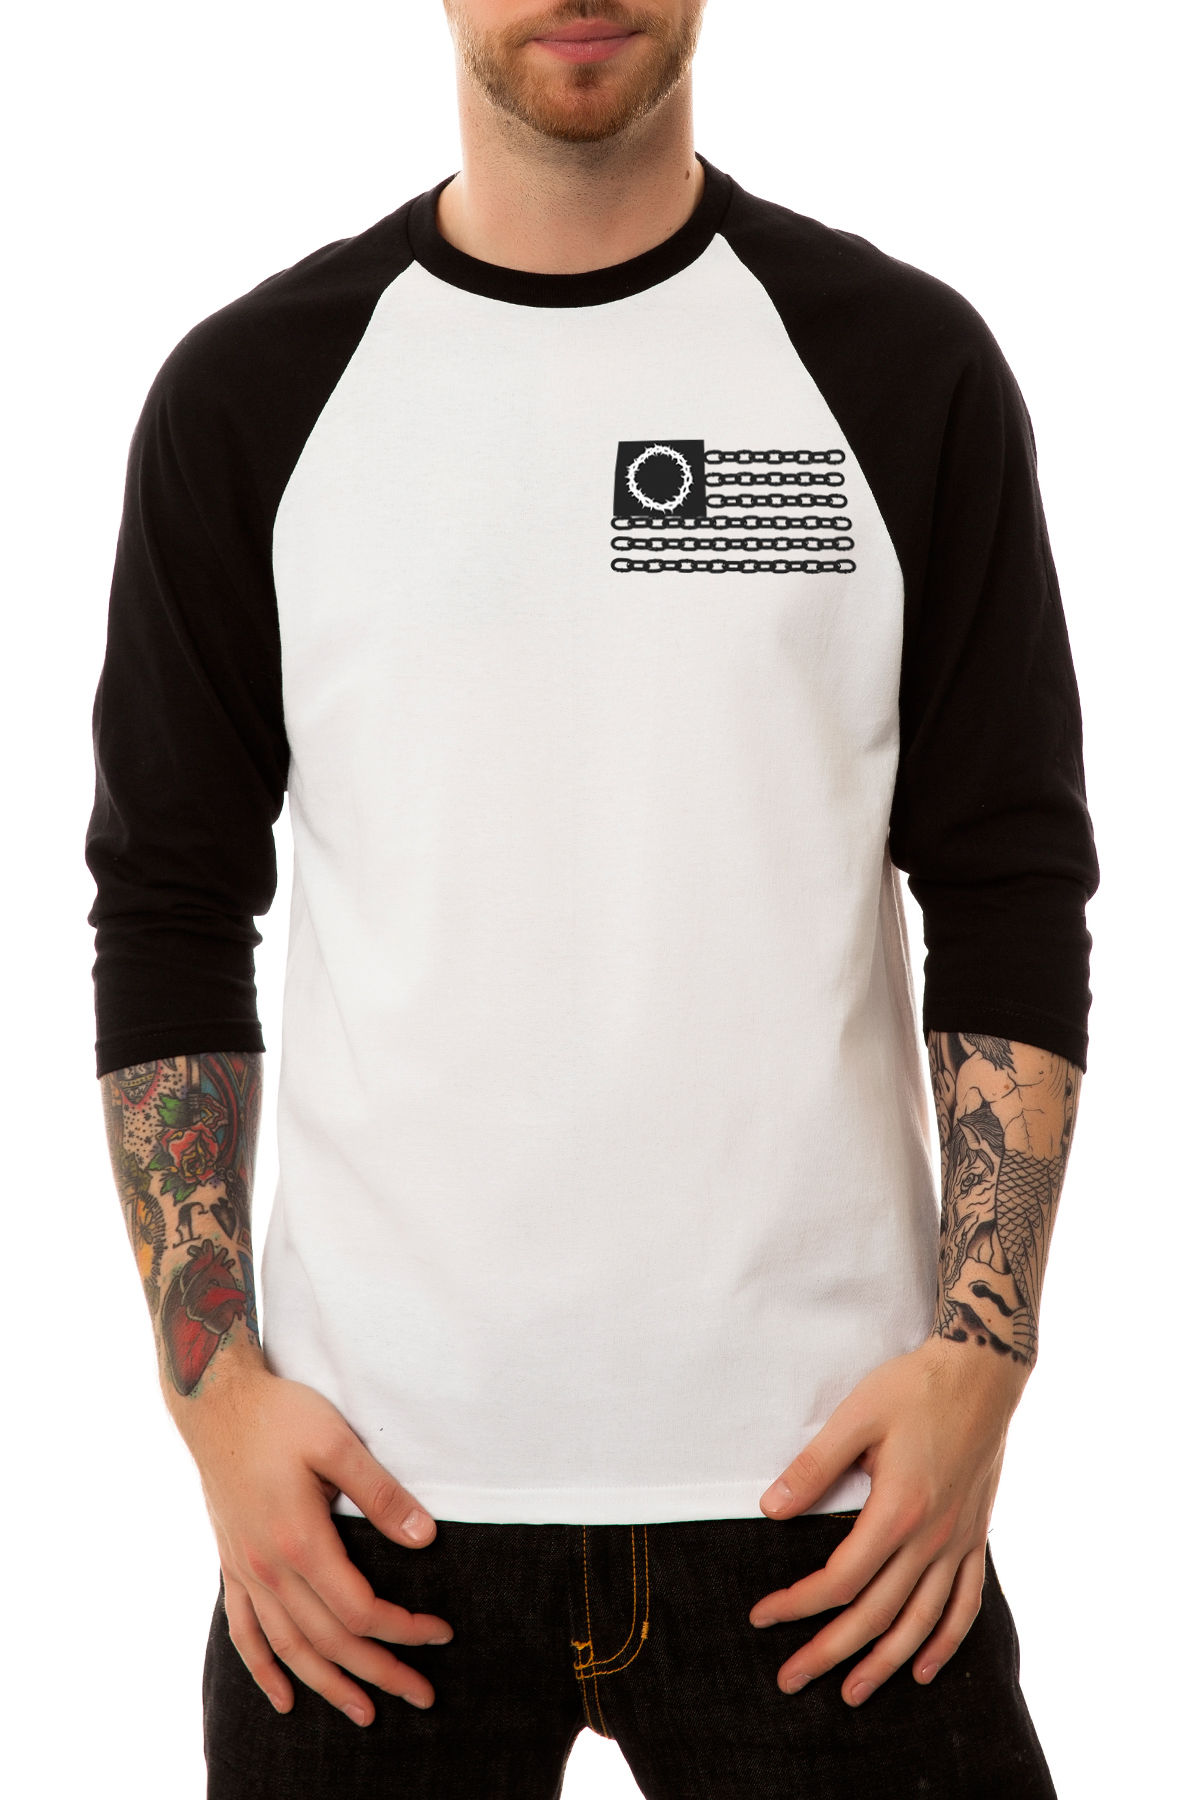 Image of The Bondage Raglan in Black and White (Black Sleeves)